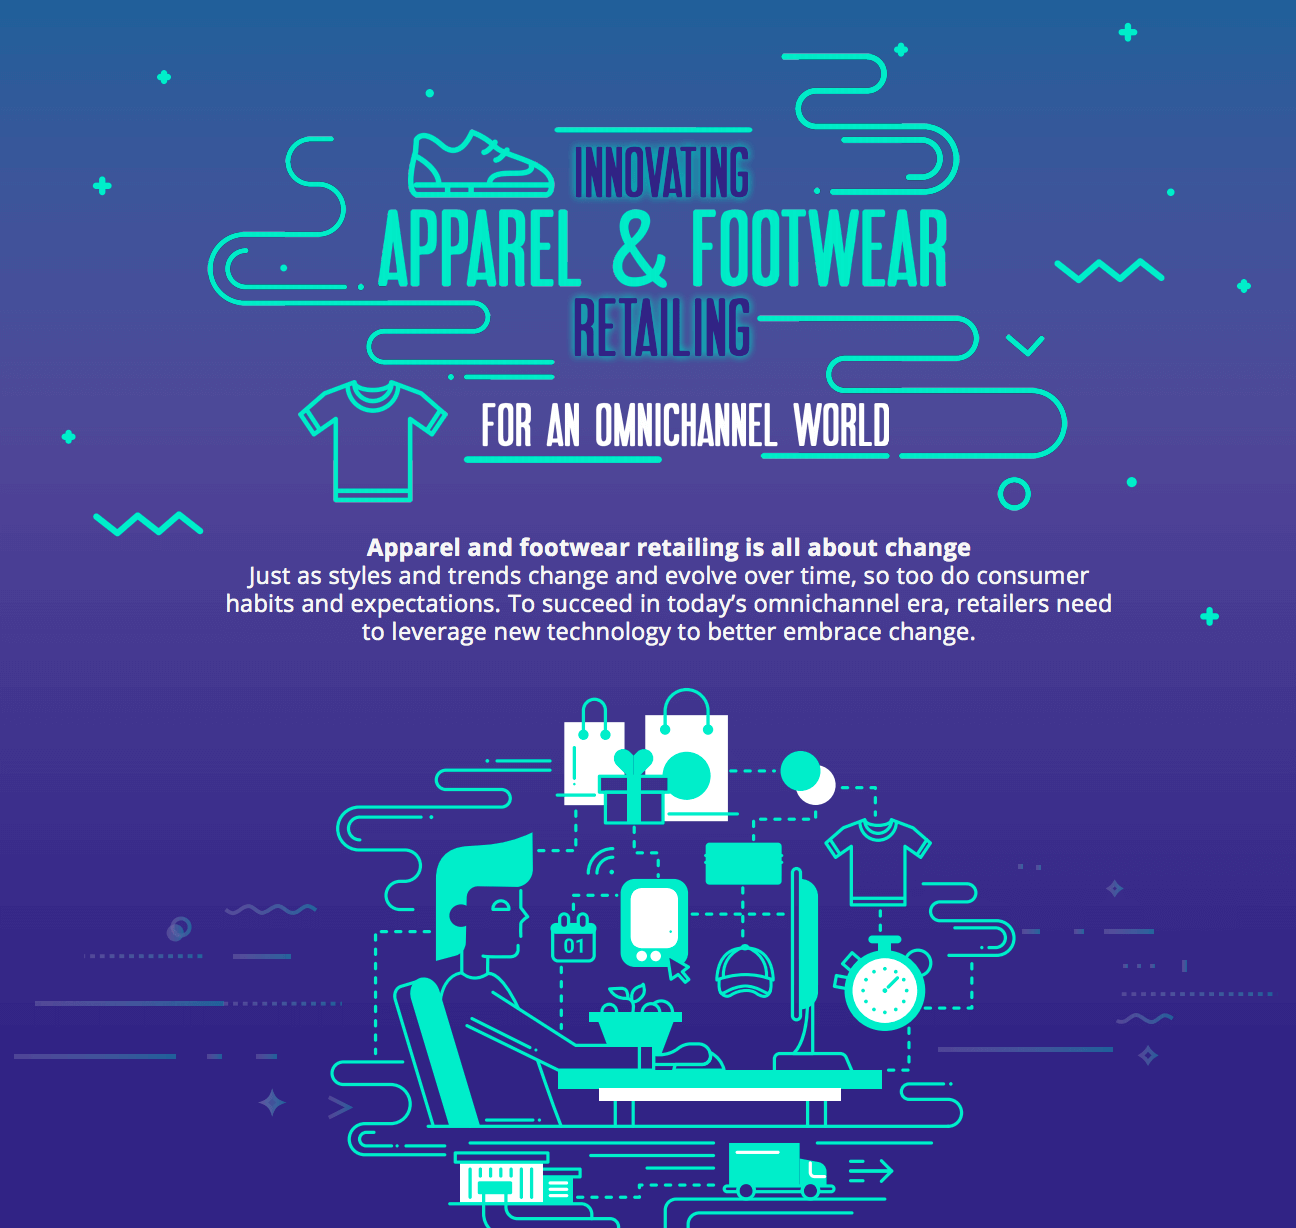 Infographic_Innovatinb Apparel and Footwear retailing_EN.png